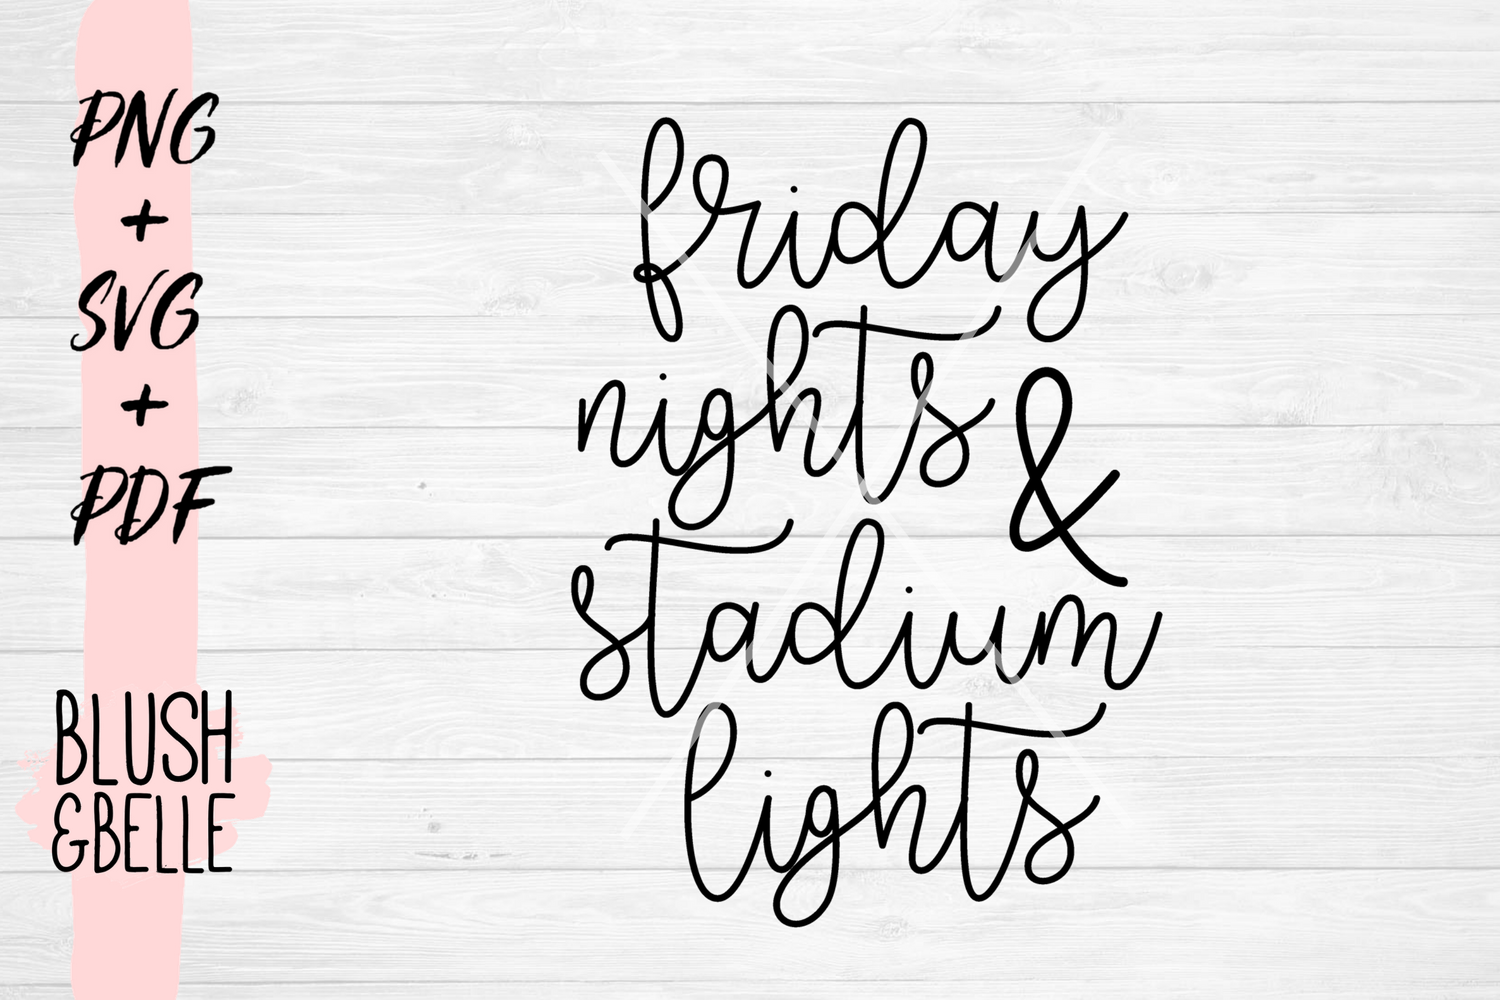 Friday Nights & Stadium Lights - PNG, SVG, PDF example image 2